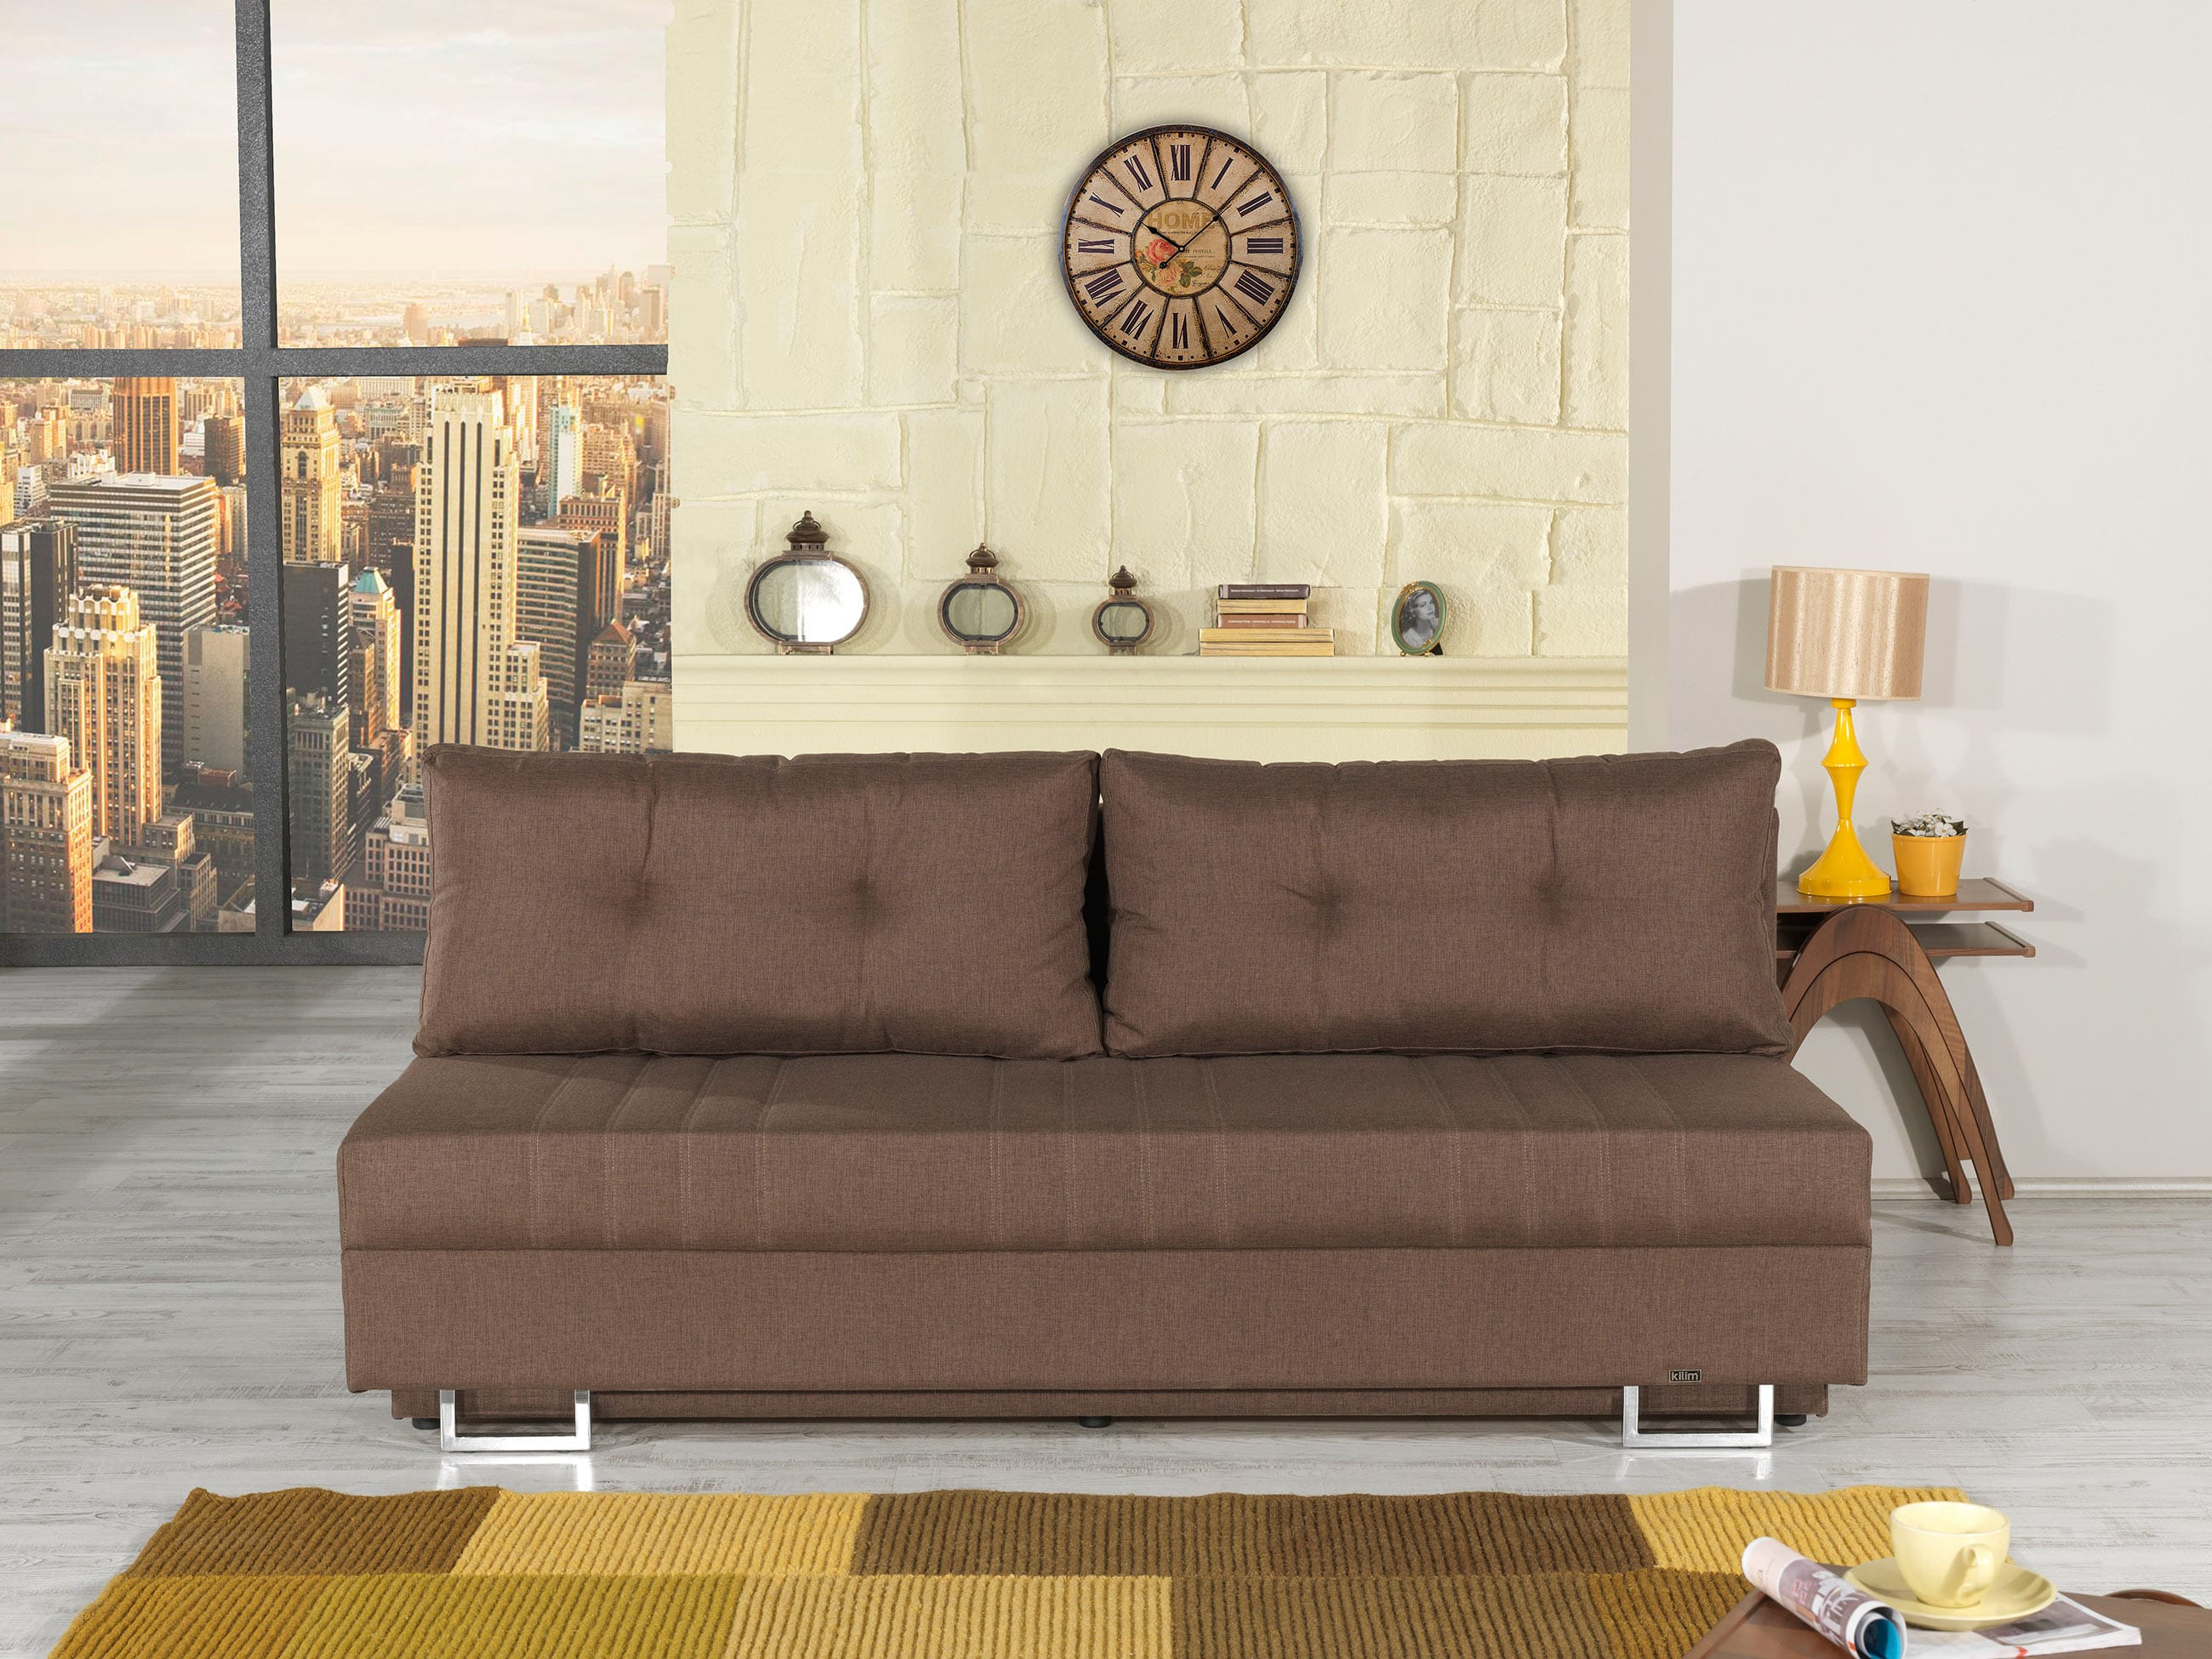 flex motion brown queen sofa bed w storage by casamode